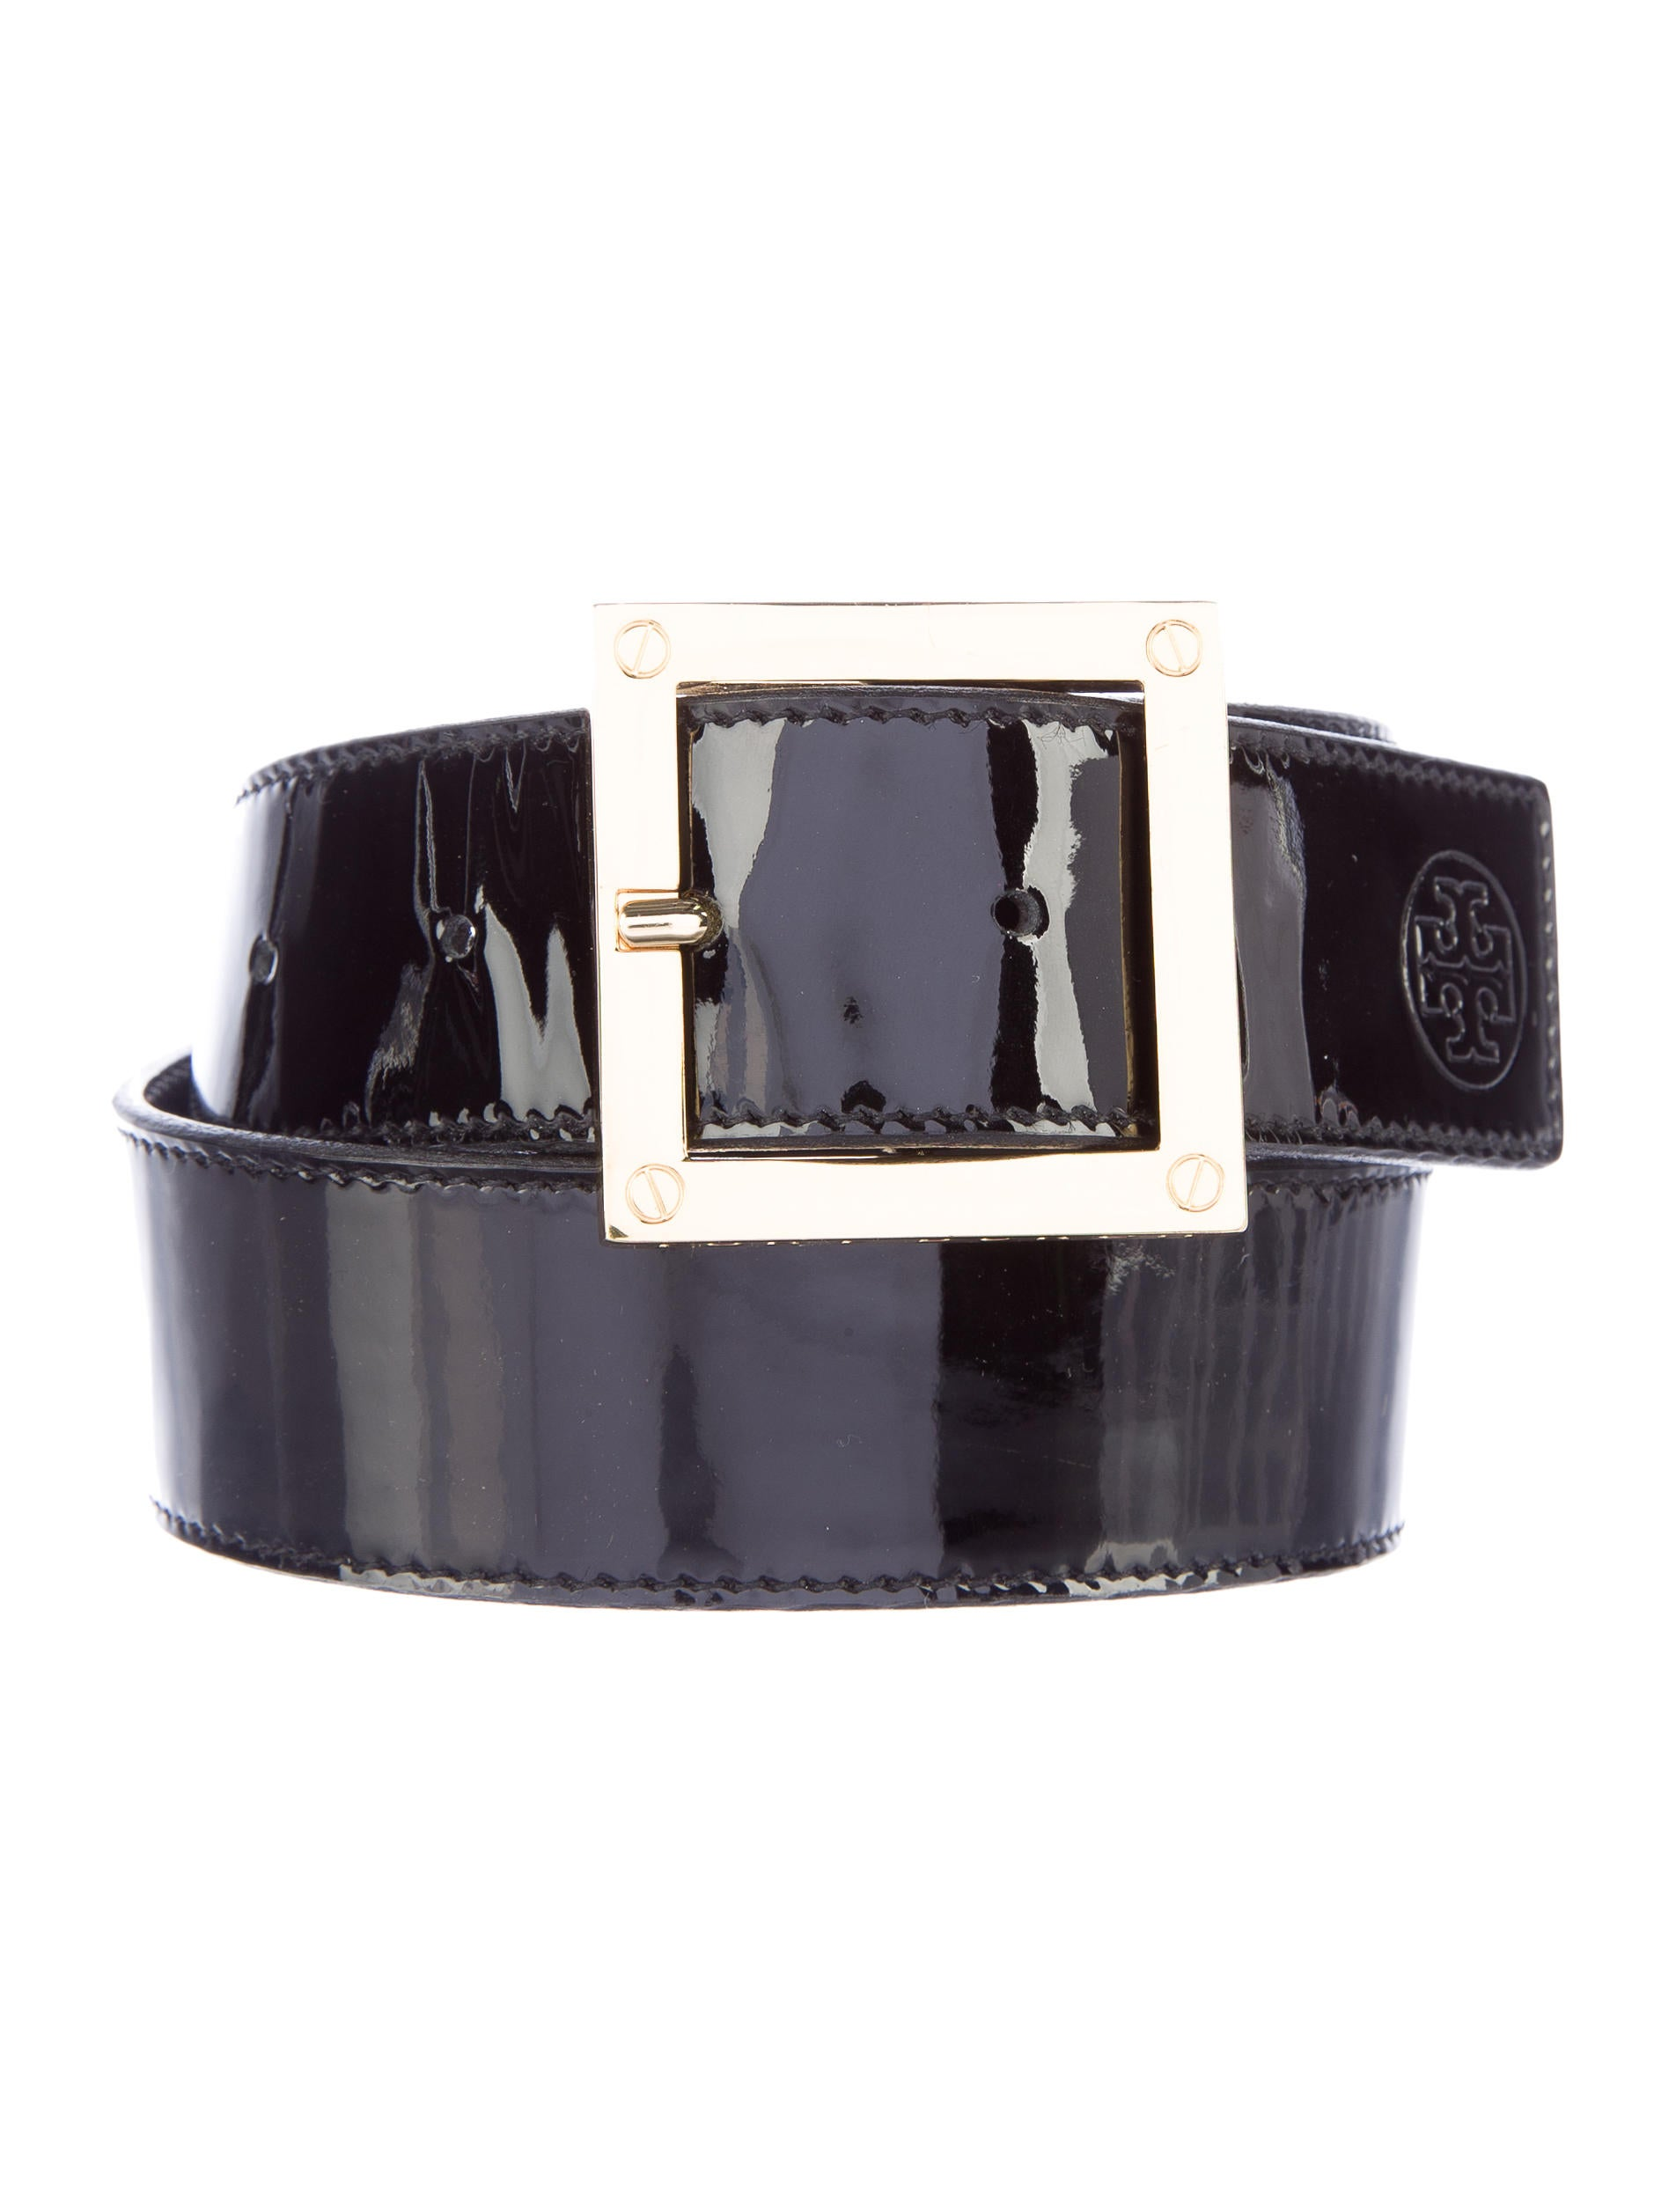 Shop patent leather belt at Neiman Marcus, where you will find free shipping on the latest in fashion from top designers.